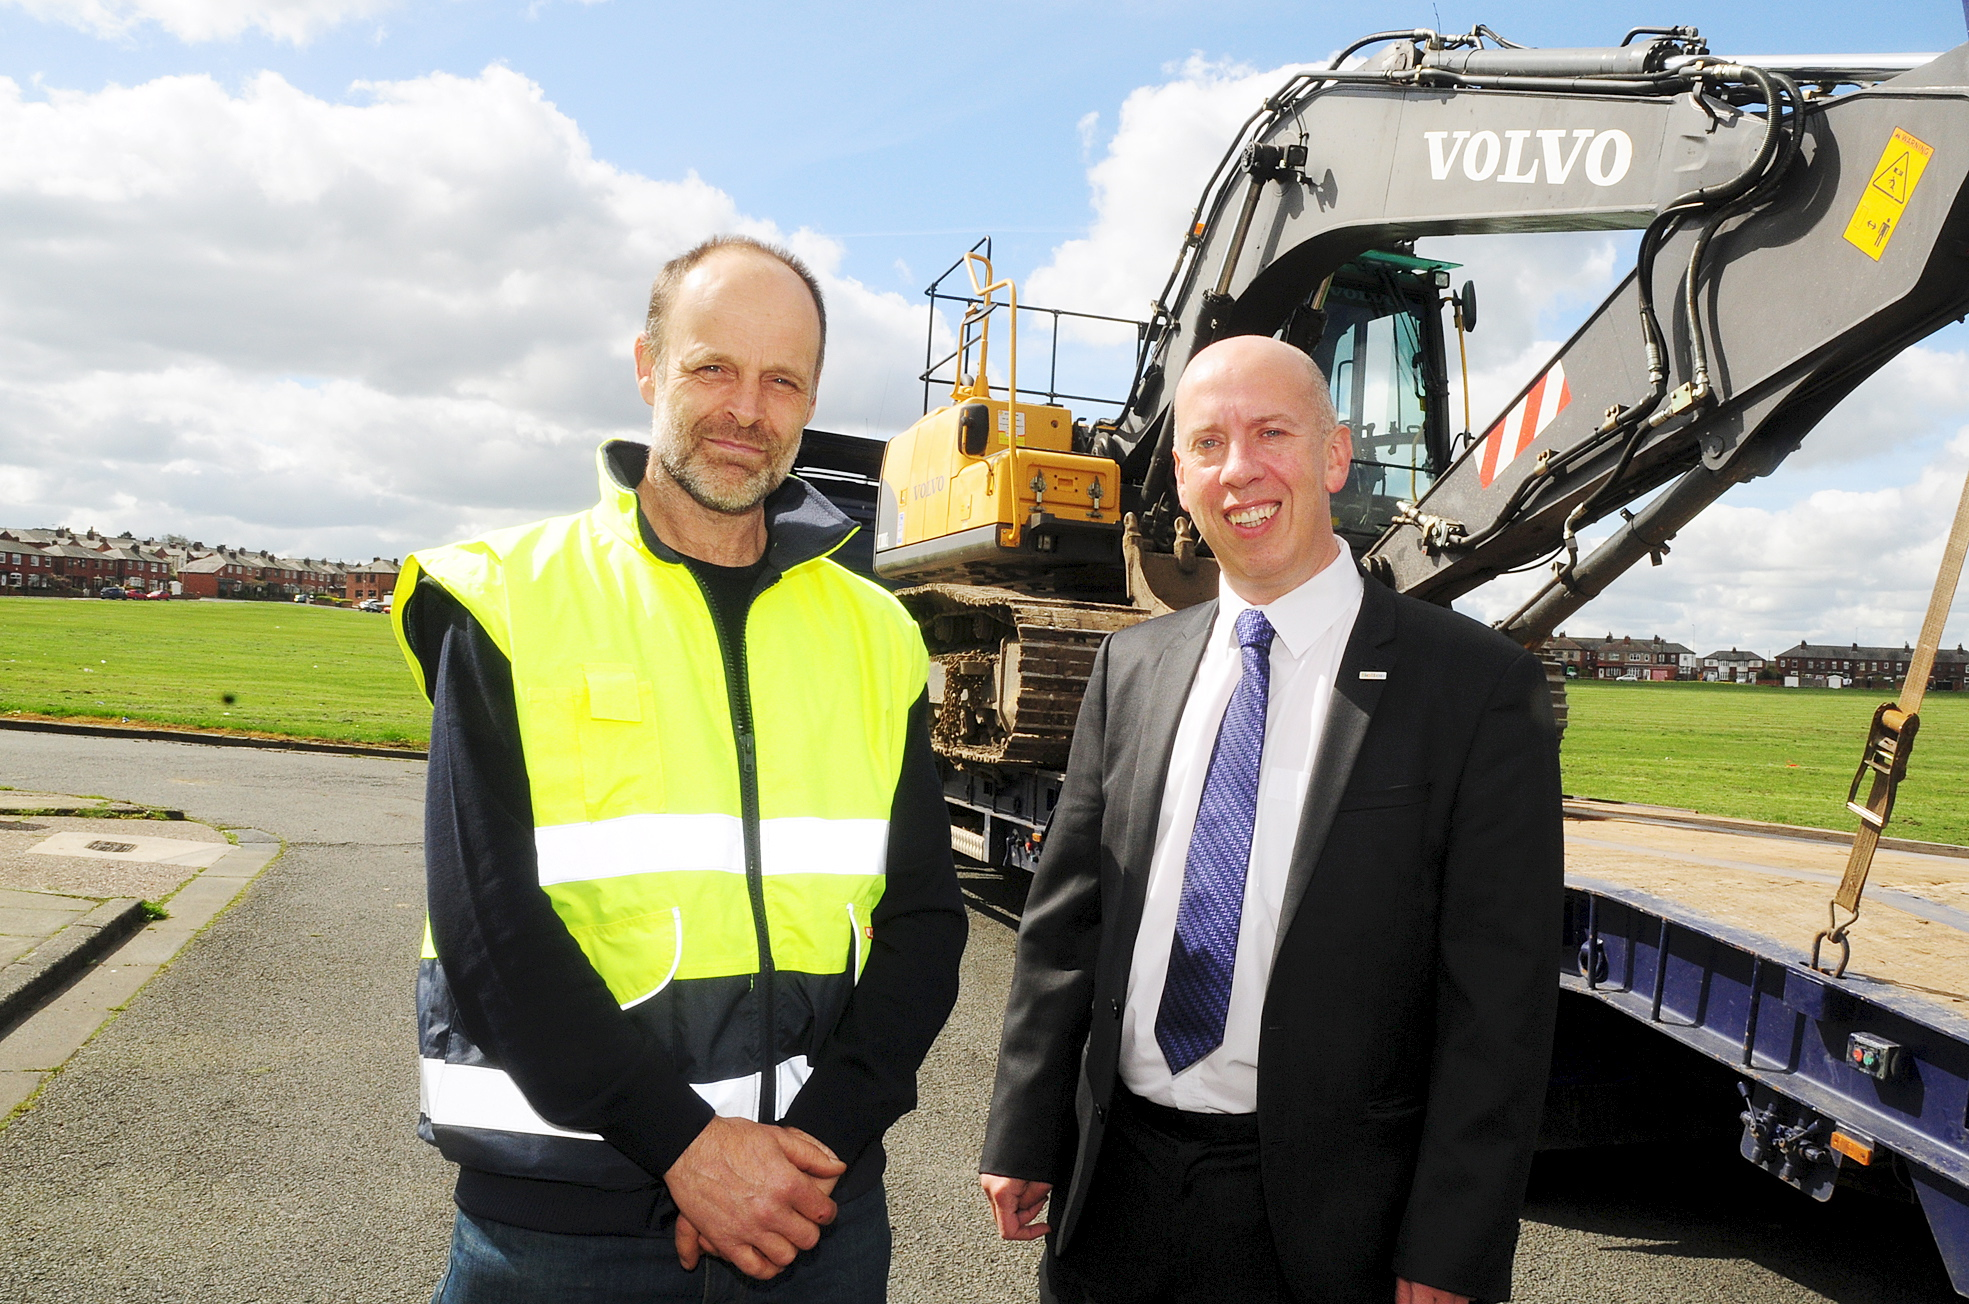 Duncan Ross, left, from Duncan Ross Land Drainage in Bolton with Cllr Nick Peel at Hulton Lane playing fields